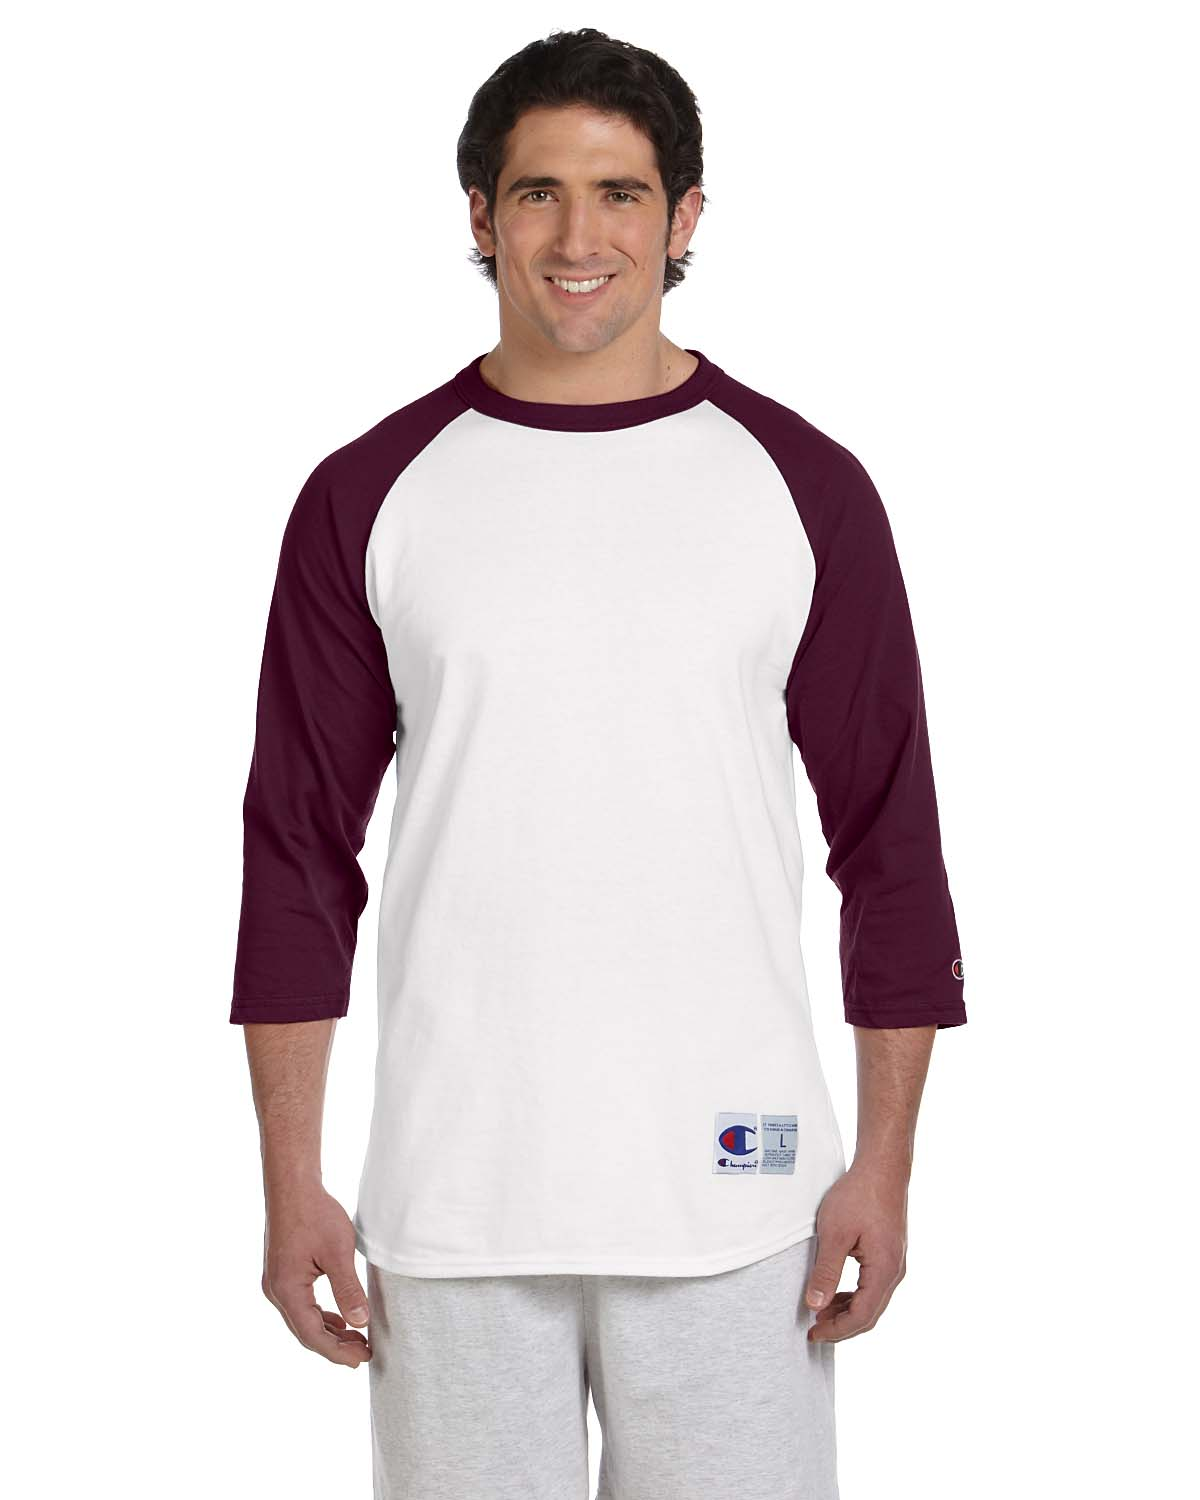 Champion 5.2 Oz. Raglan Baseball T-Shirt